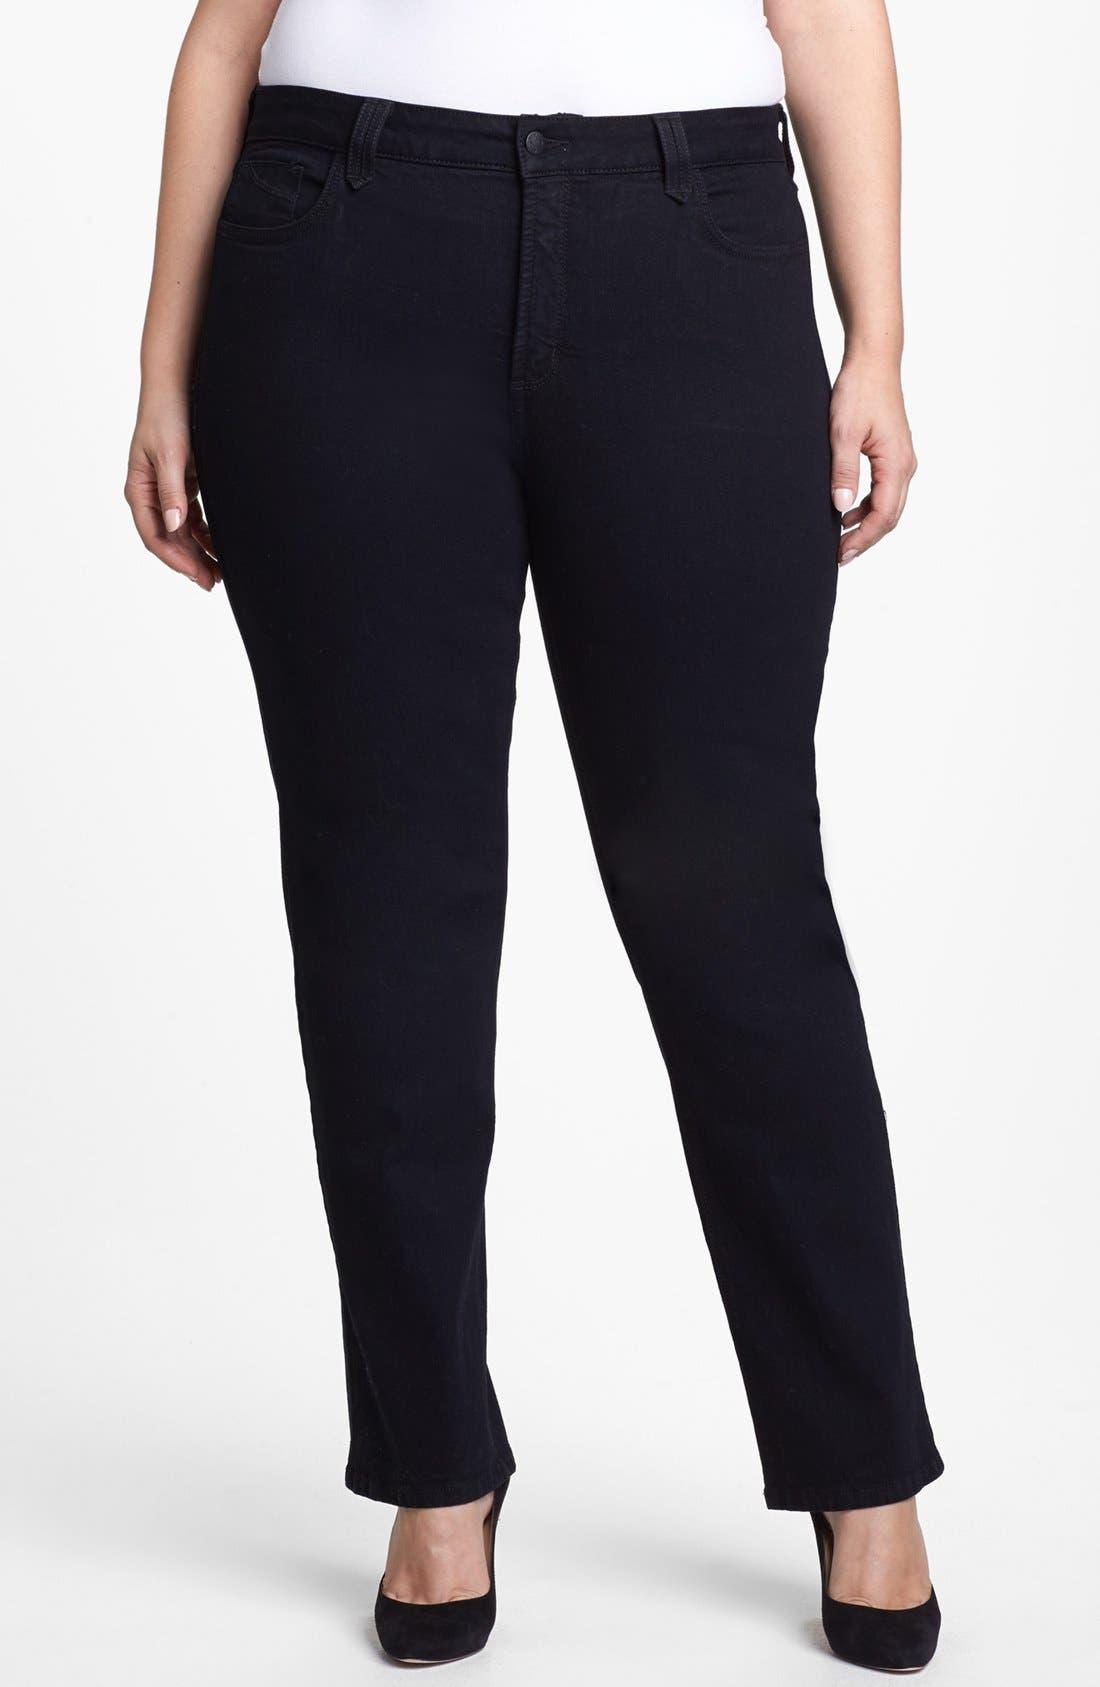 Main Image - NYDJ 'Hayden' Embroidered Pocket Stretch Straight Leg Jeans (Black) (Petite Plus Size)